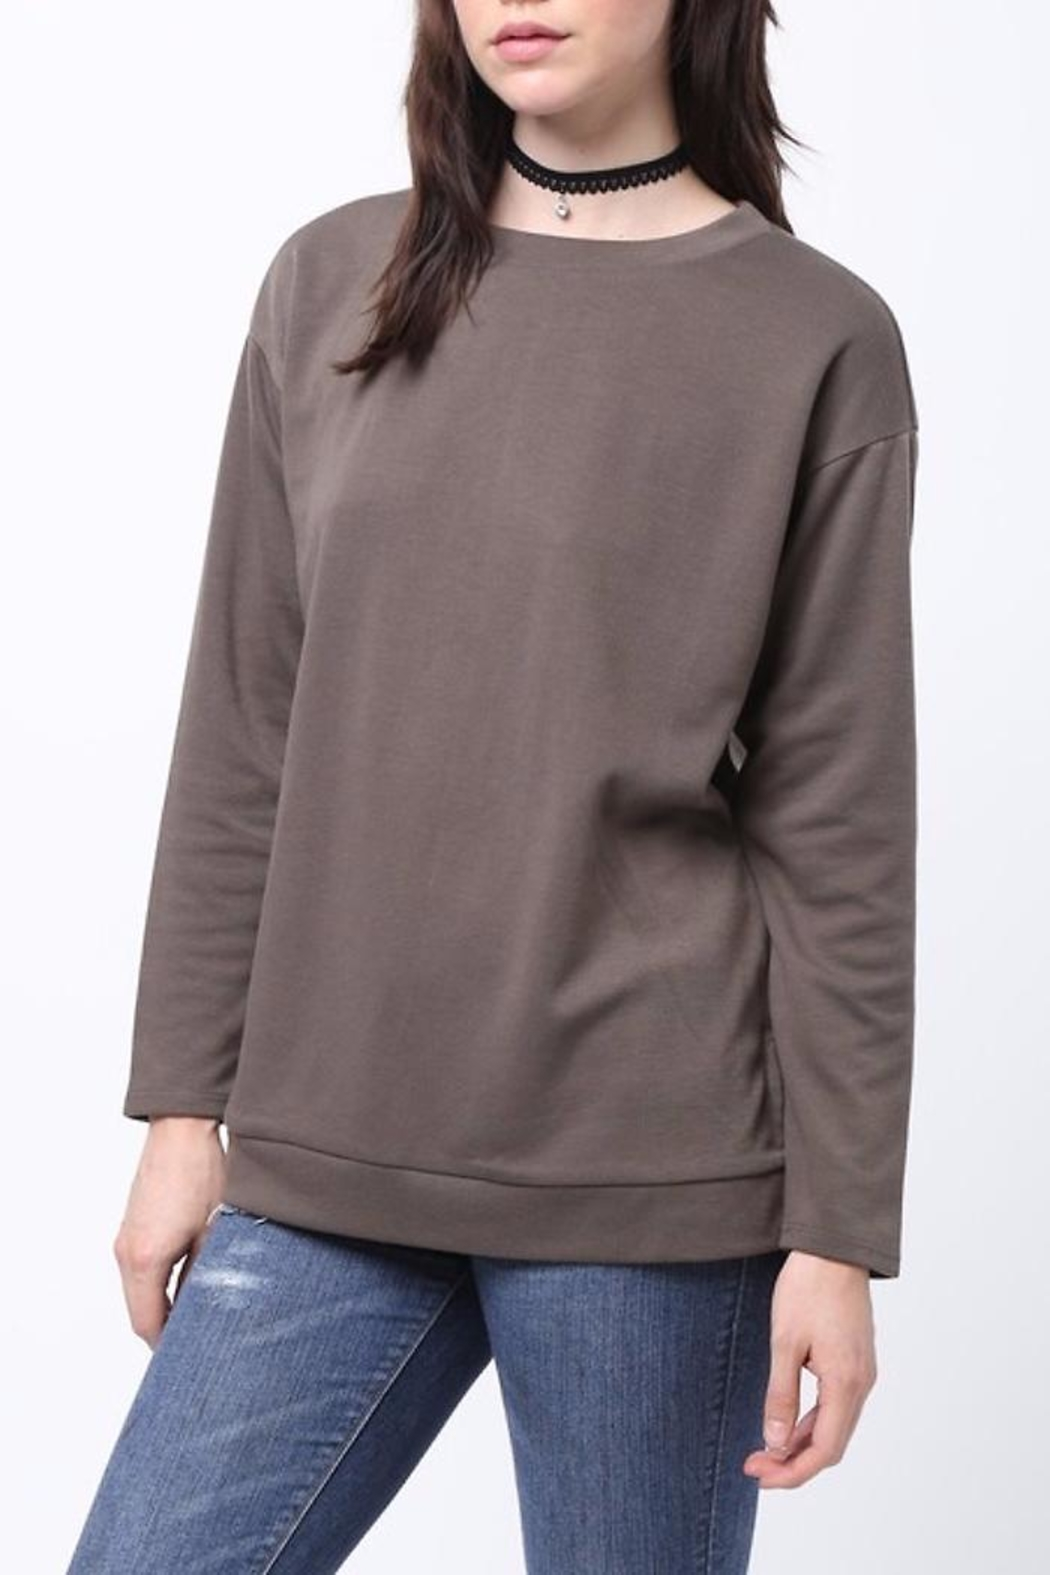 People Outfitter Aednat Sweatshirt - Front Full Image